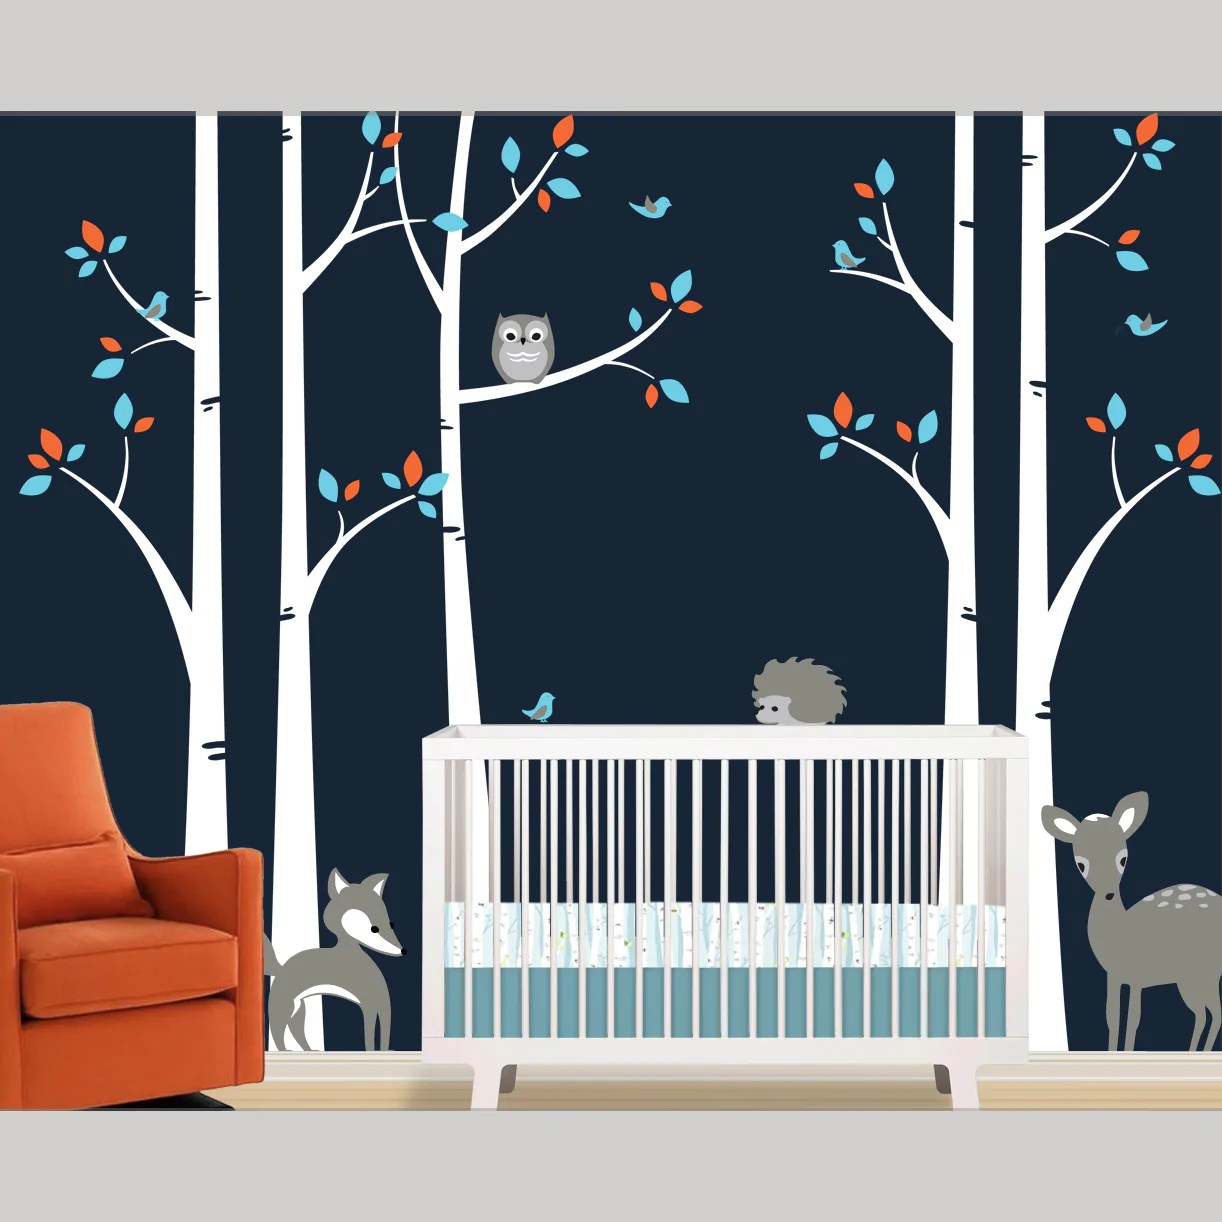 Particular Birch Tree Wall Decal Woodland Forest Removable Decals Birch Tree Wall Decal Woodland Forest Removable Decals Lulukuku Birch Tree Vinyl Wall Decal Birch Tree Wall Decal Fox houzz 01 Birch Tree Wall Decal